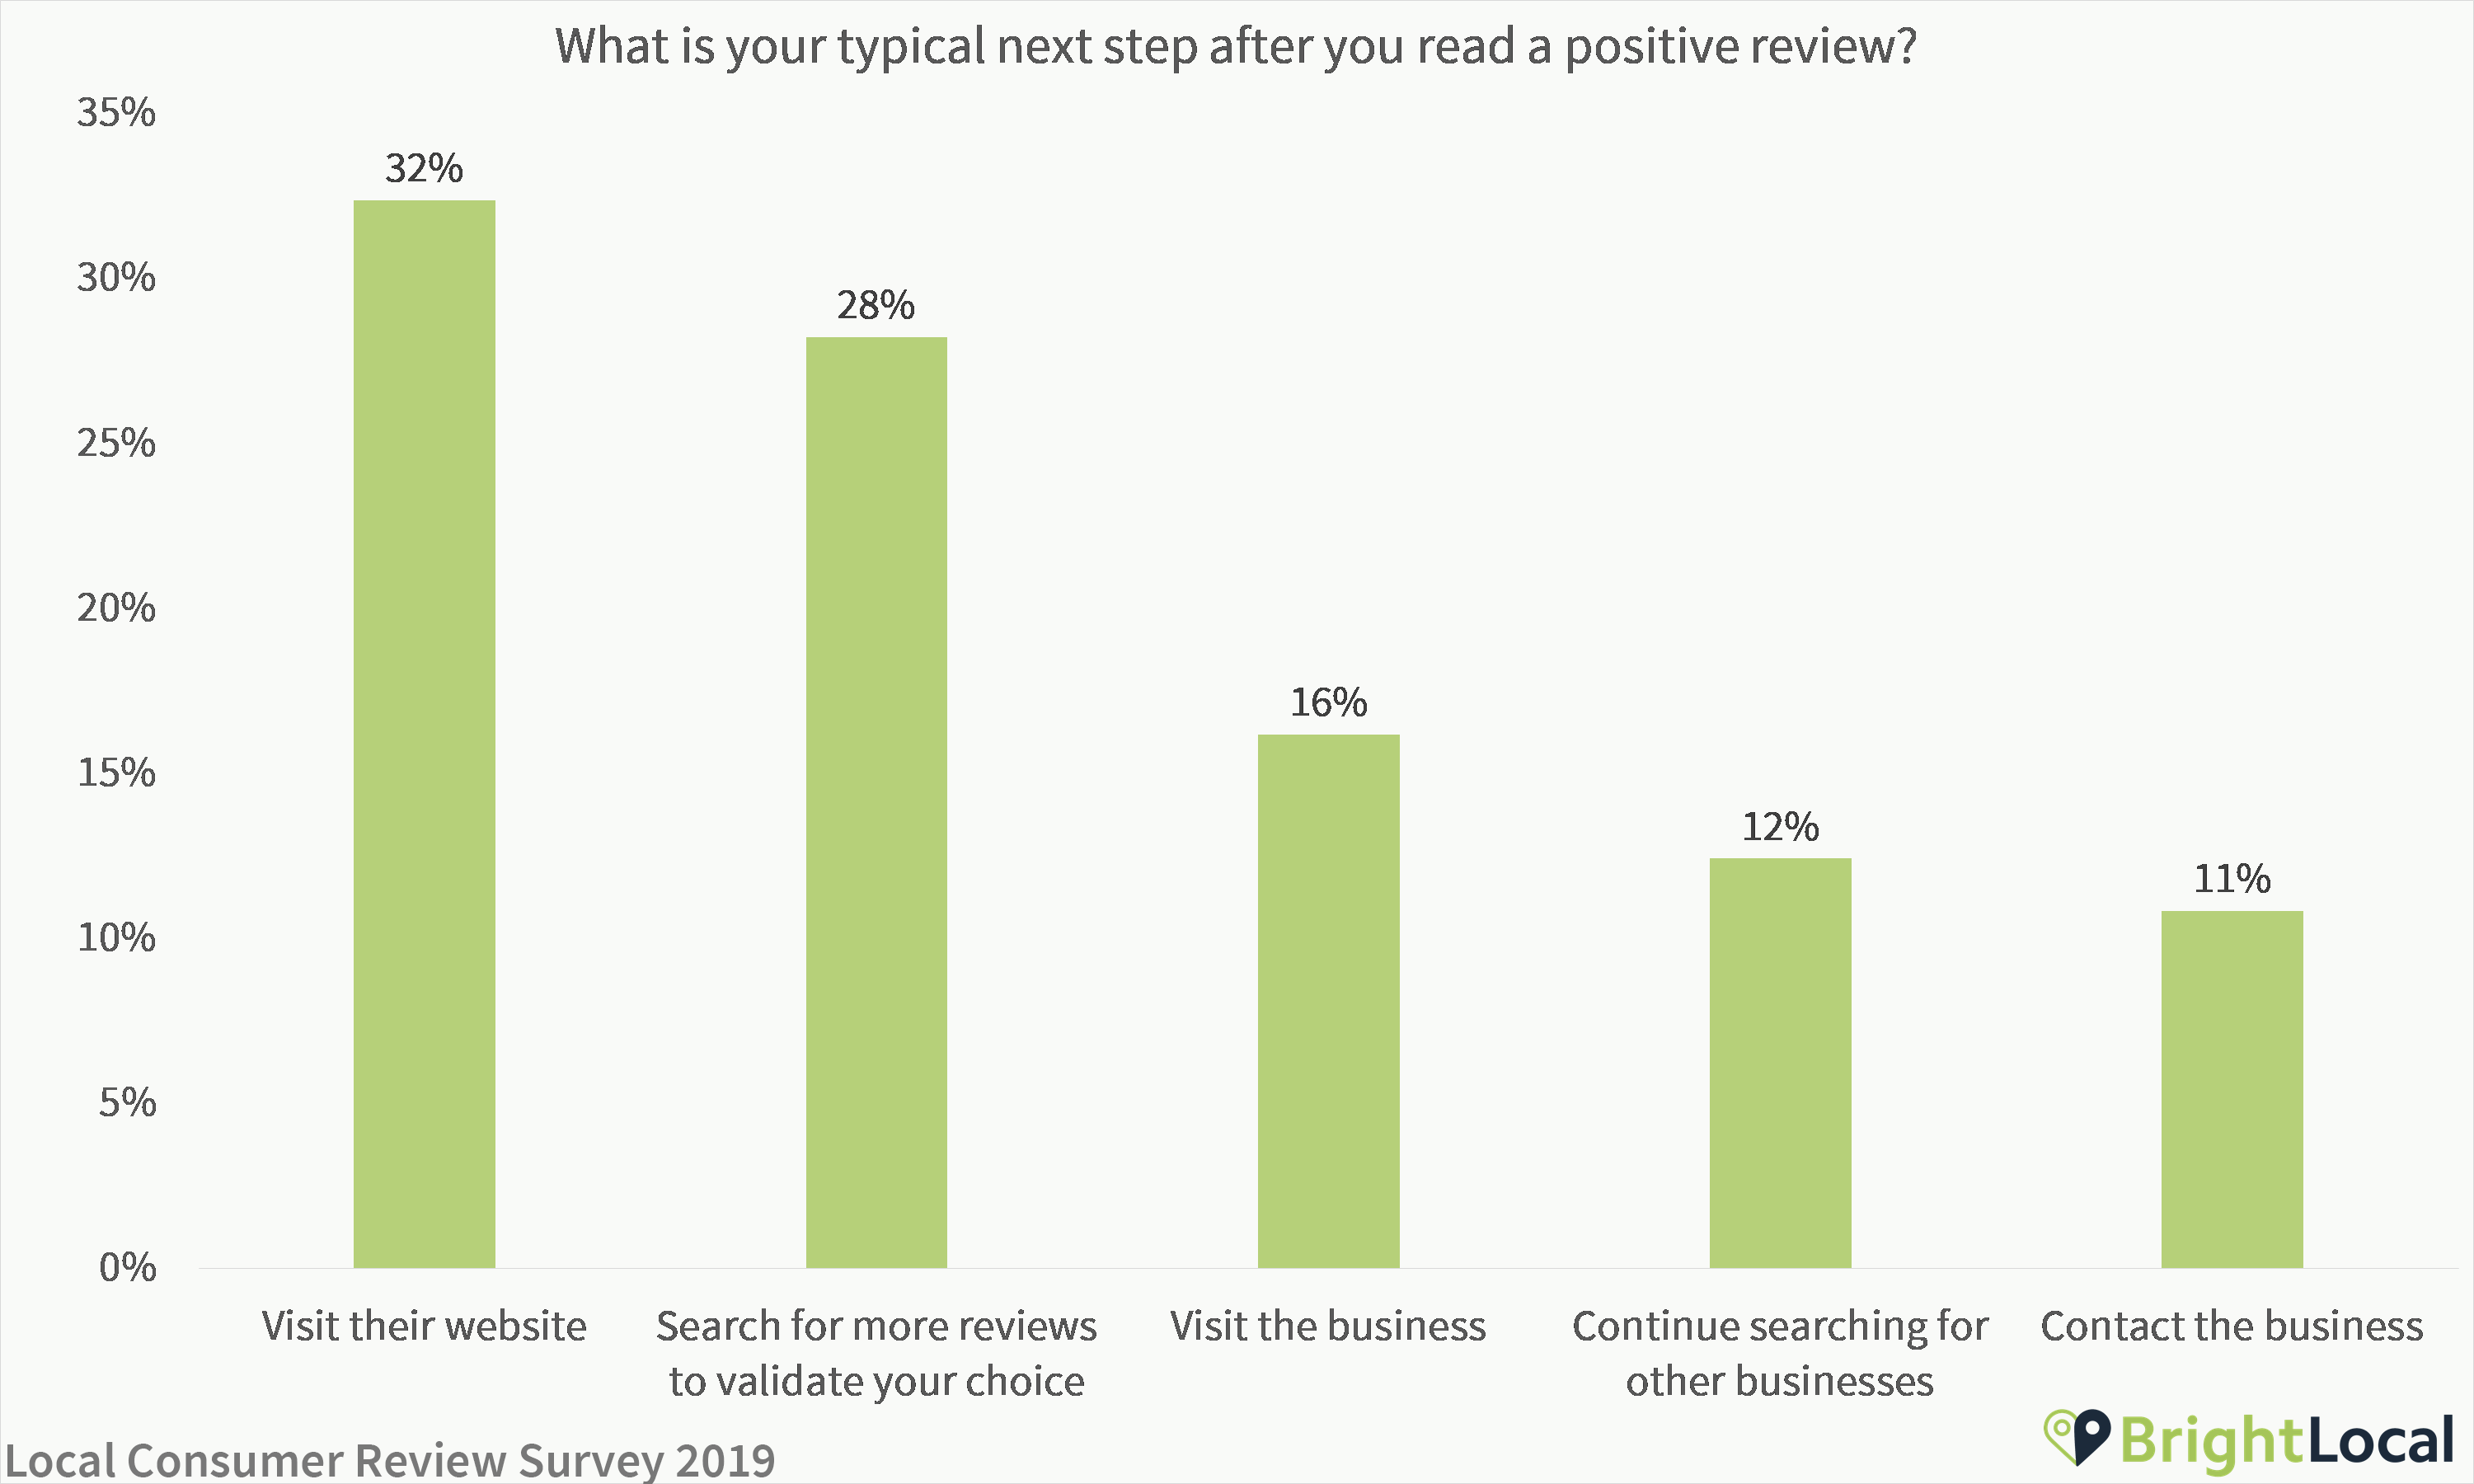 What do you do after reading a positive review